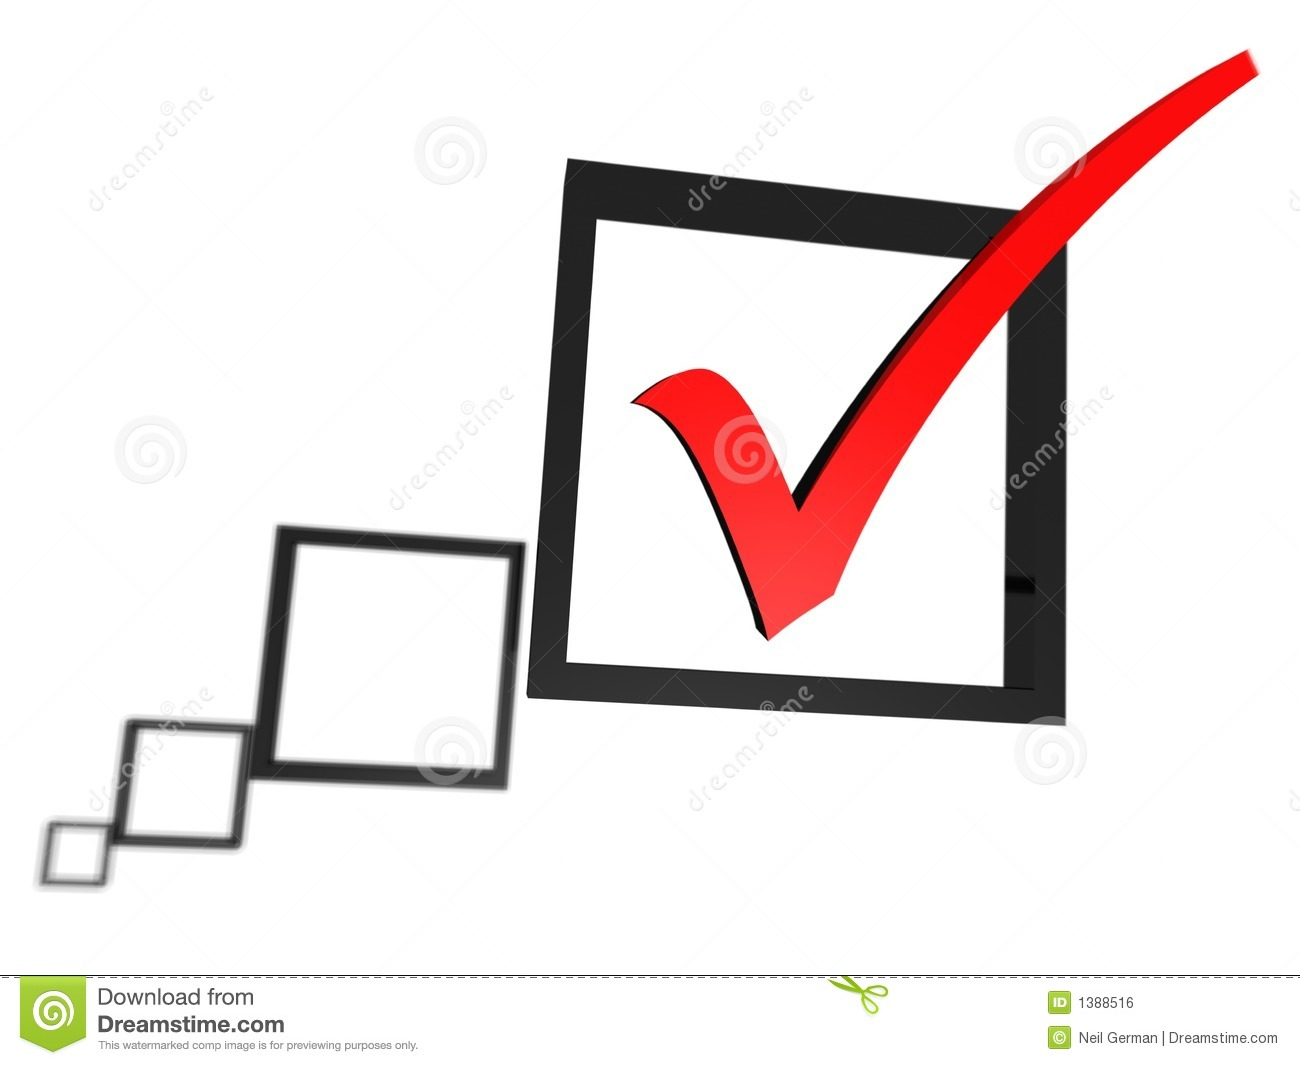 Red Tick Box : Red tick in a check box list royalty free stock image